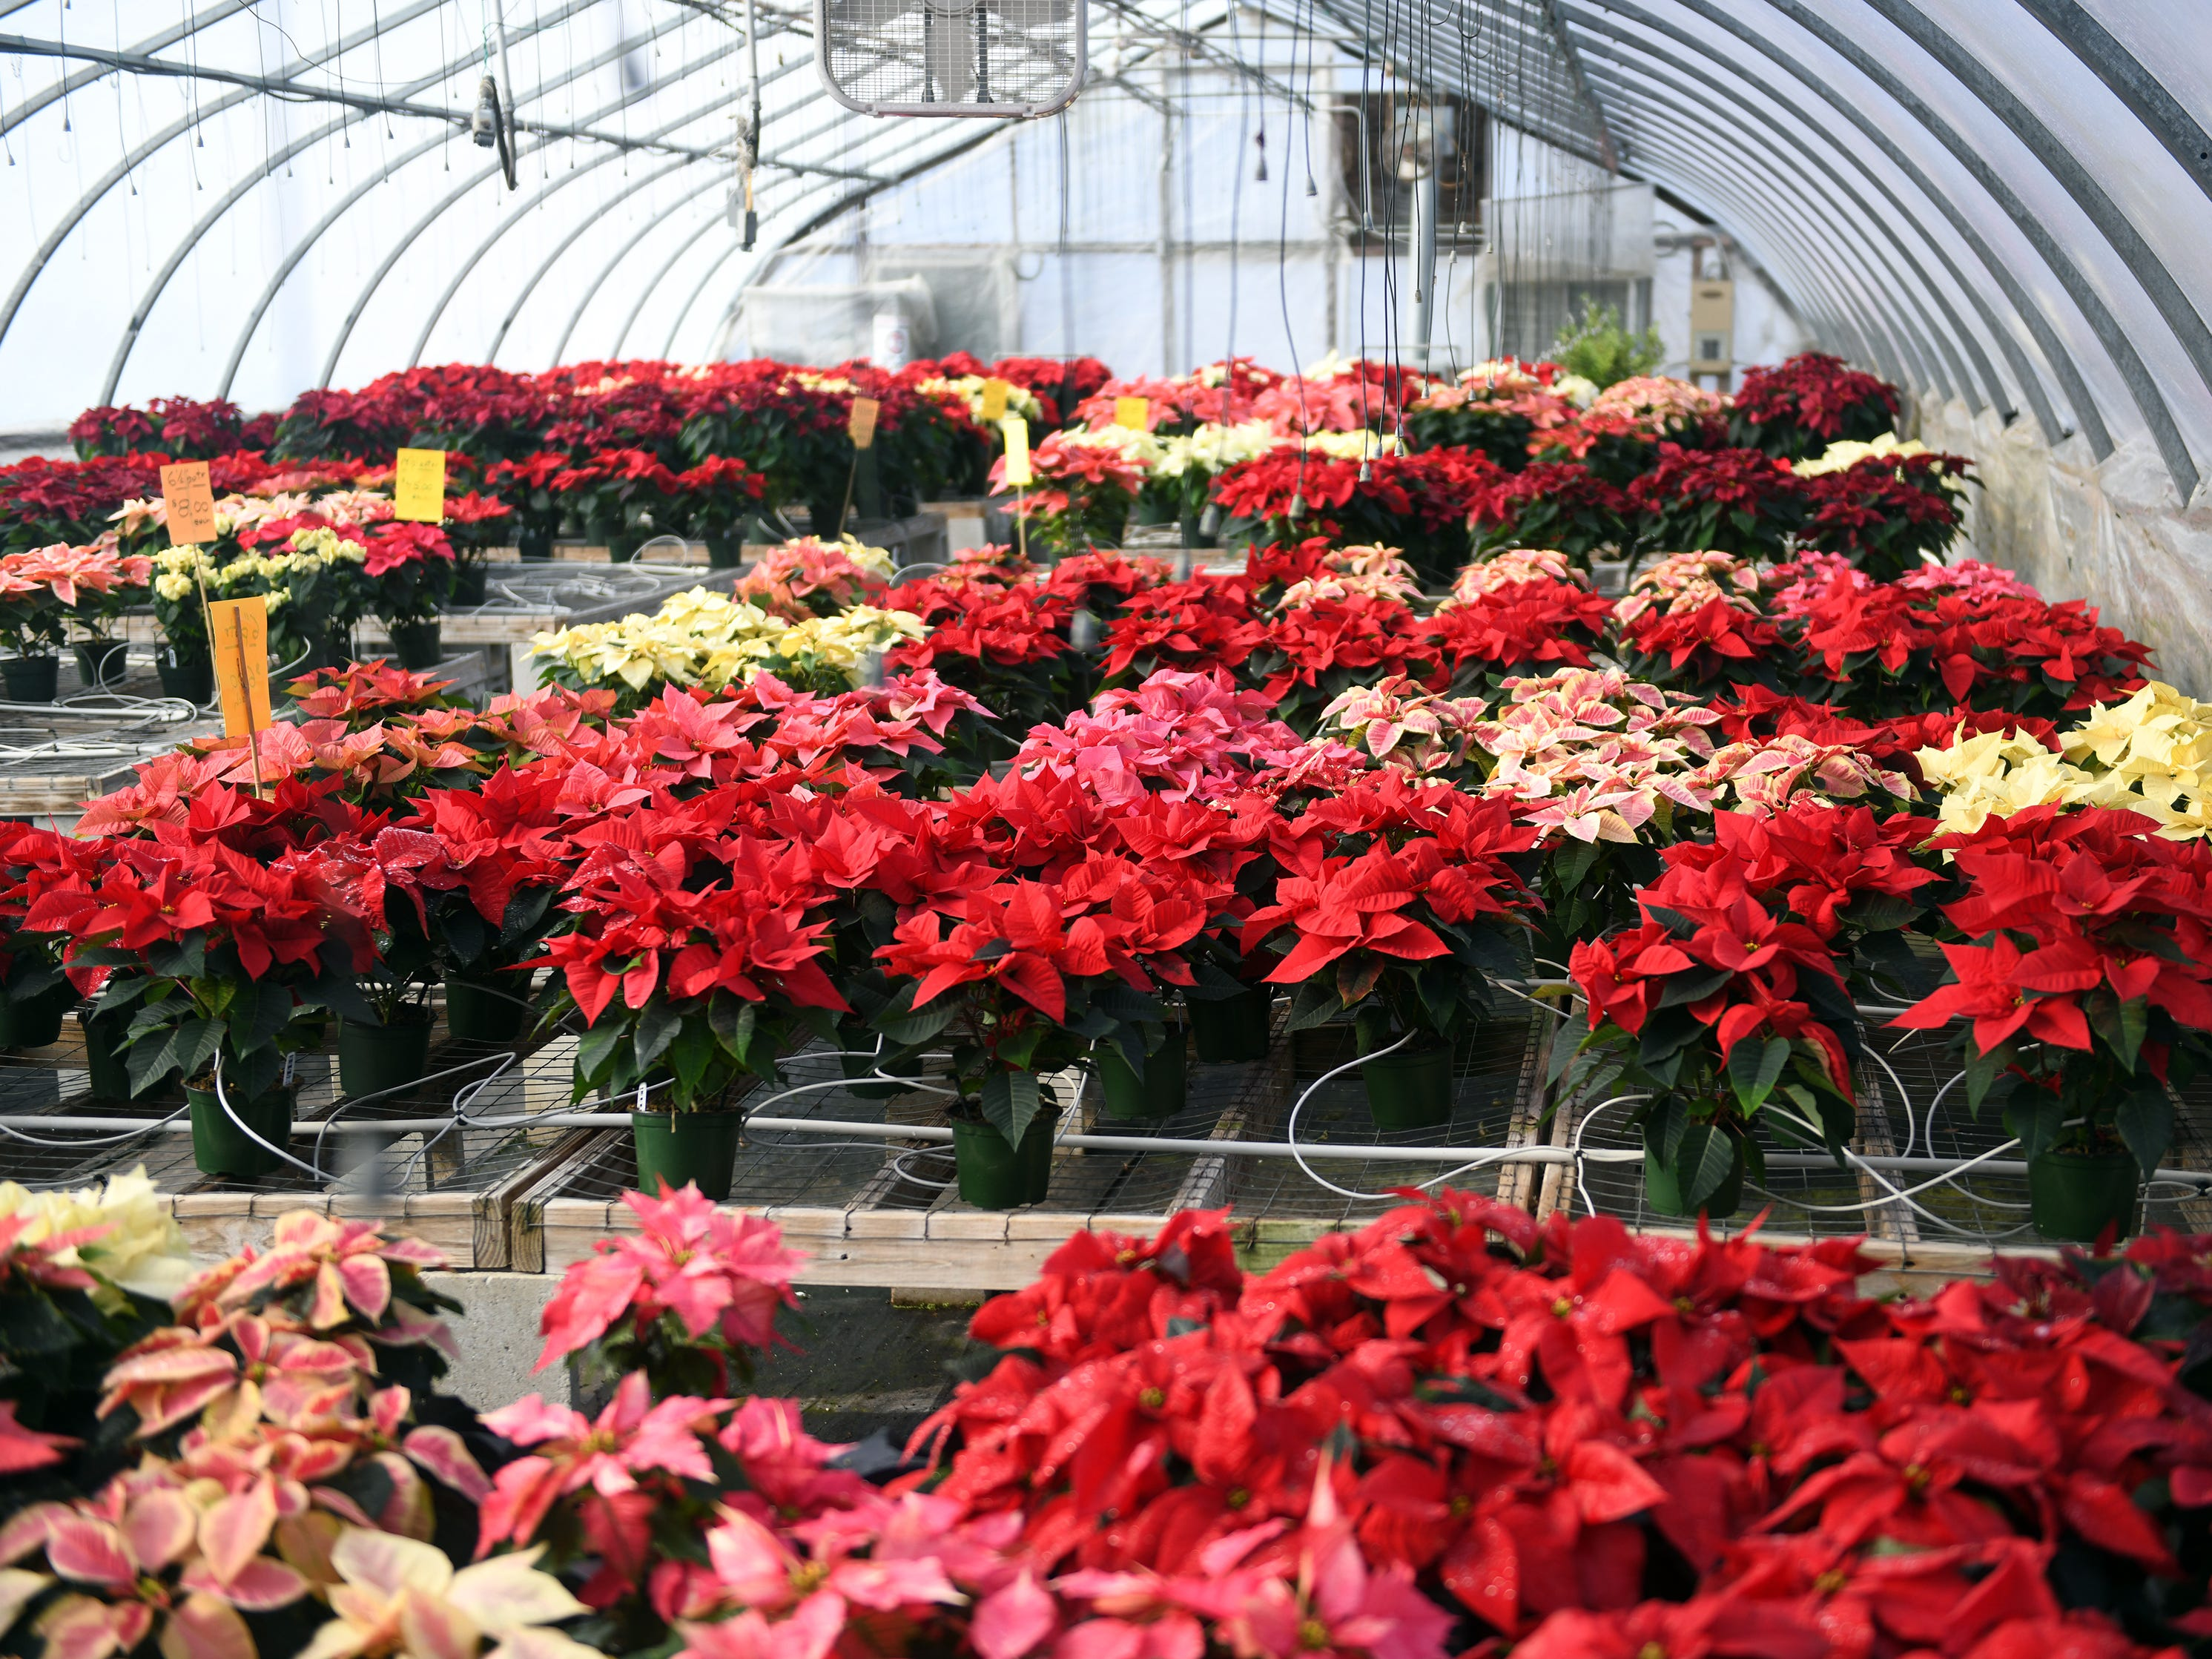 Tim and Patty Huffman of Huffman Farms grow and sell poinsettias that are available in several different colors including red, white, burgundy, pink and even some speckled varieties at 296 S. Blue Bell Road in Vineland. Monday, December 10, 2018.